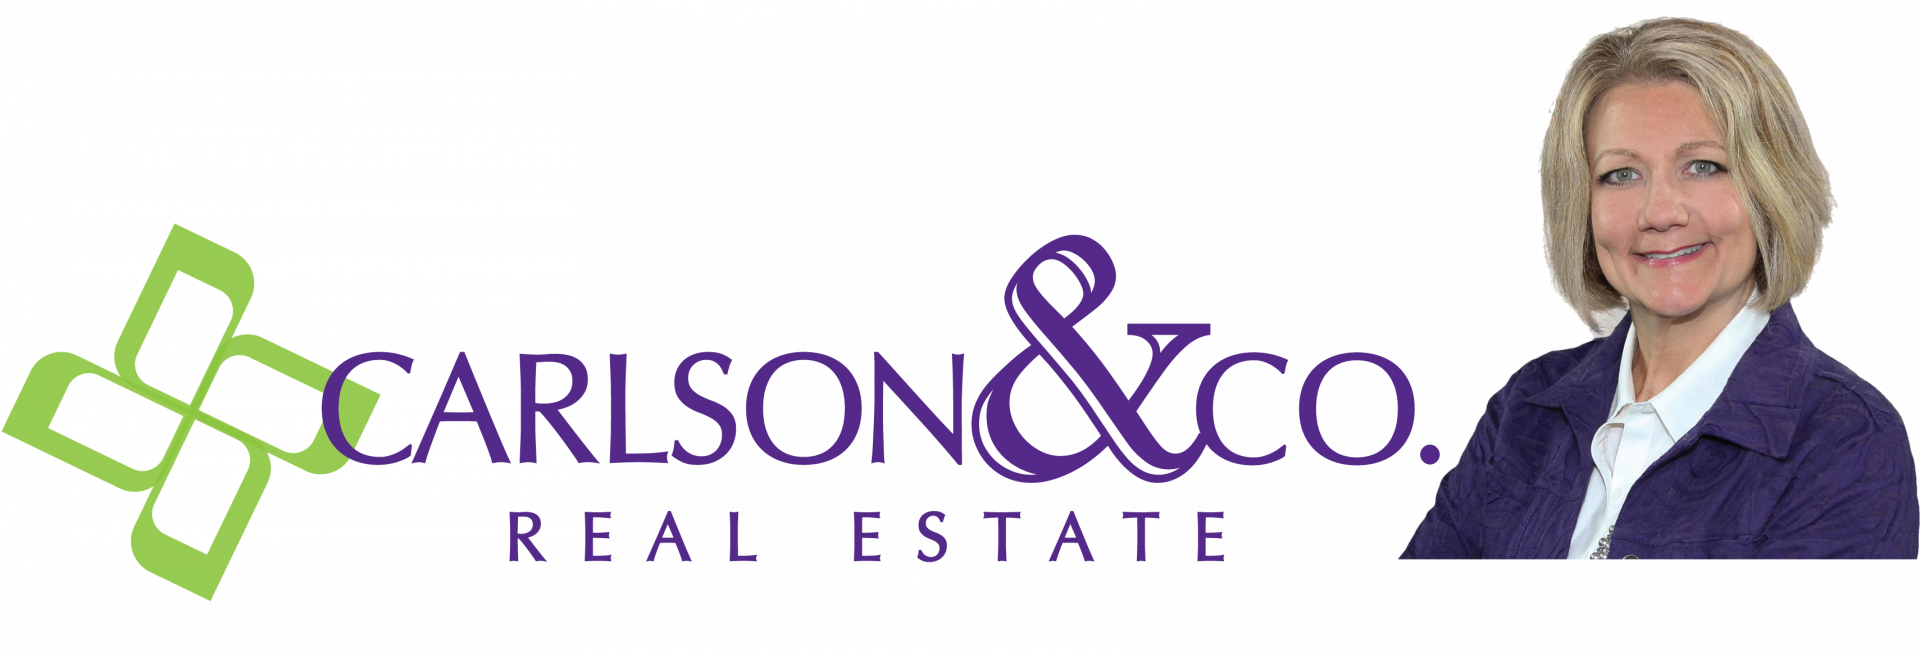 Carlson and Co. Real Estate  logo